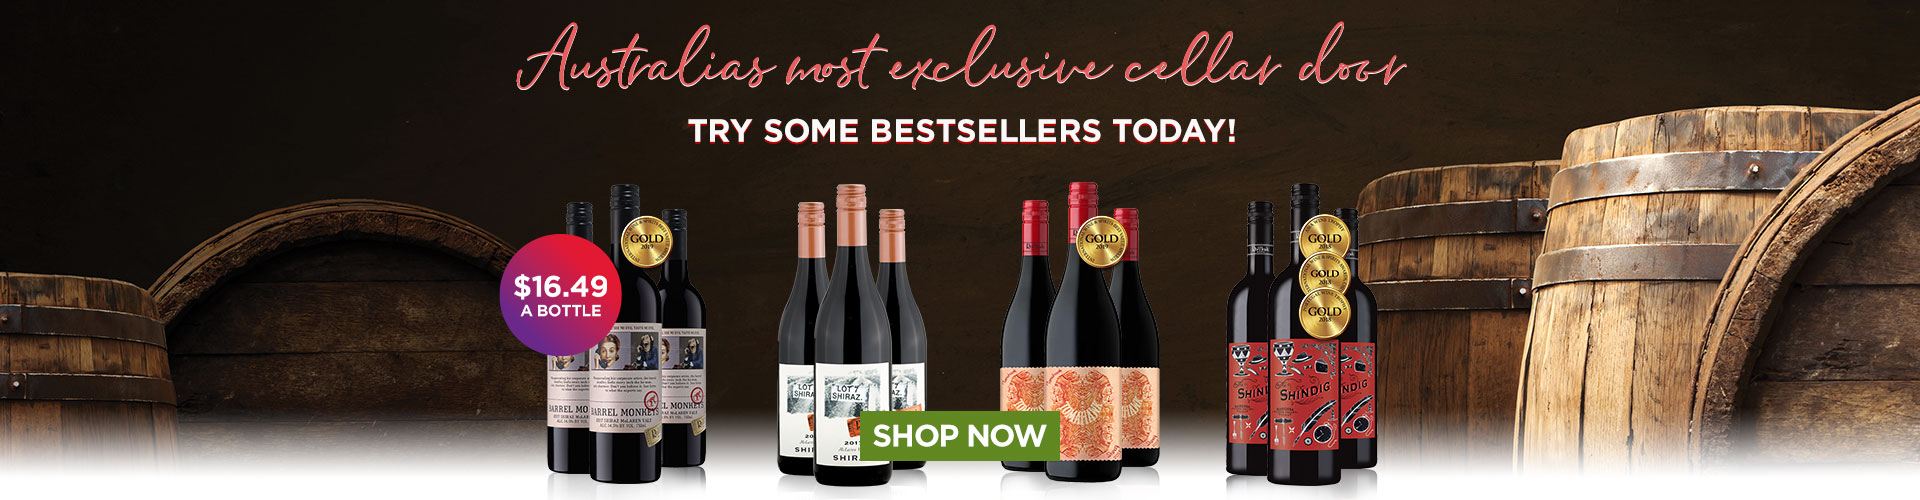 Try these bestsellers from Australias most exclusive cellar door